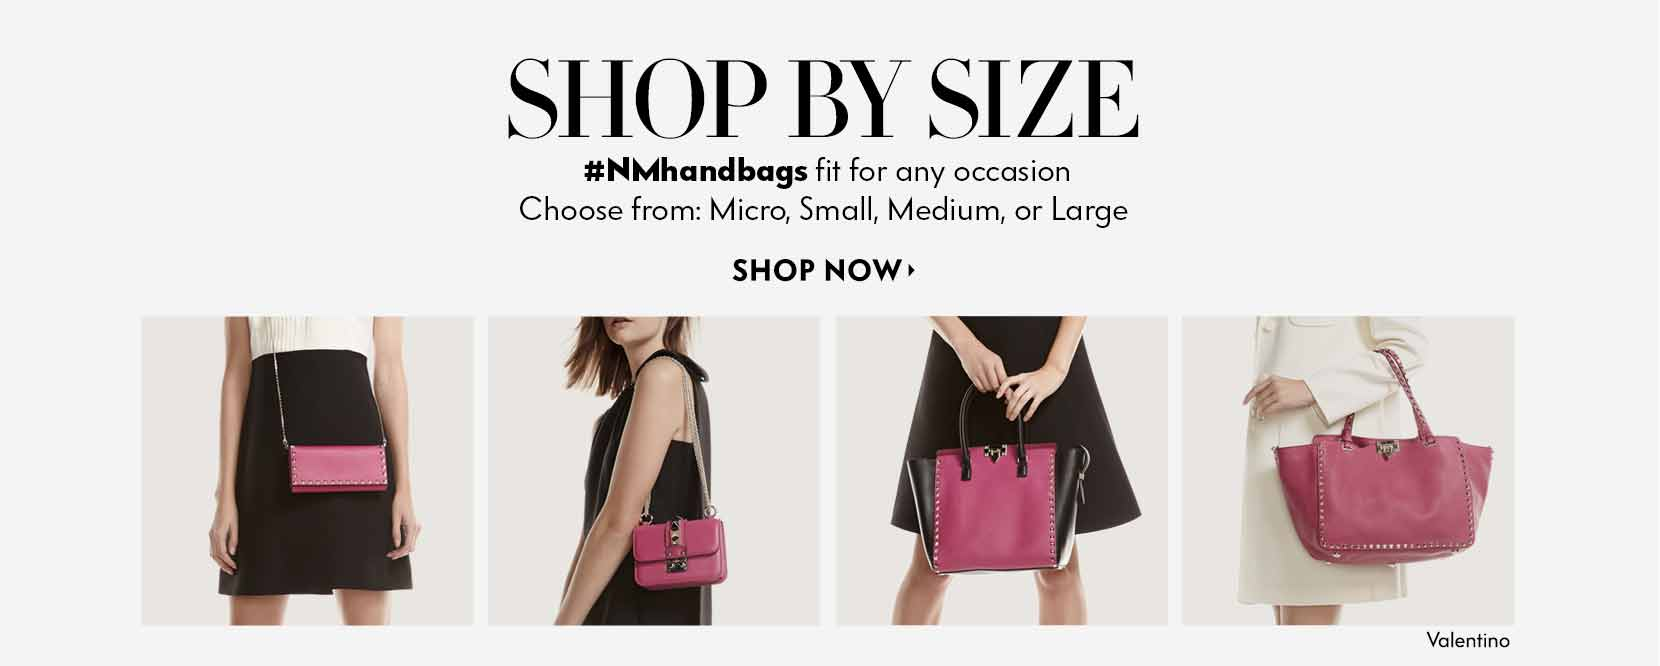 Shop Handbags by Size